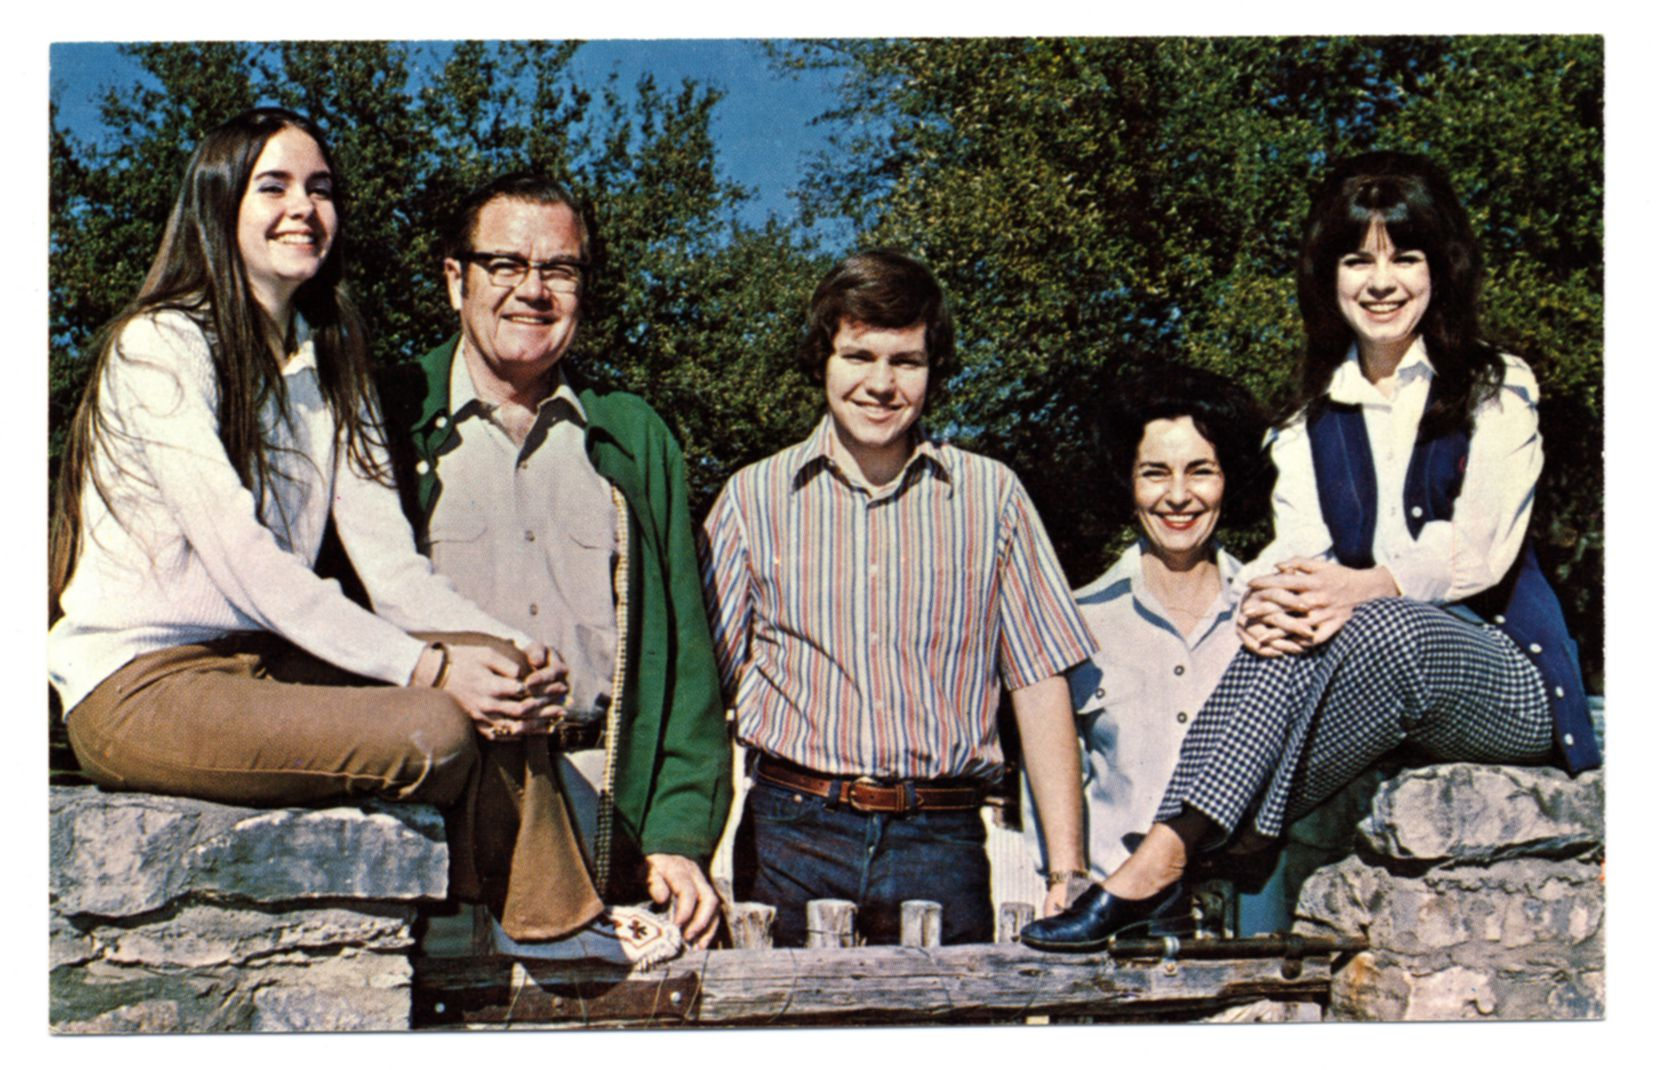 Dolph (second from left) and Janey Briscoe (second from right) are shown in an official campaign portrait with their children Janey, Dolph III (Chip) and Cele at the Frio Ranch. Dolph Briscoe Jr. was elected Texas governor in 1972. (The Dolph Briscoe Center for American History, The University of Texas at Austin)